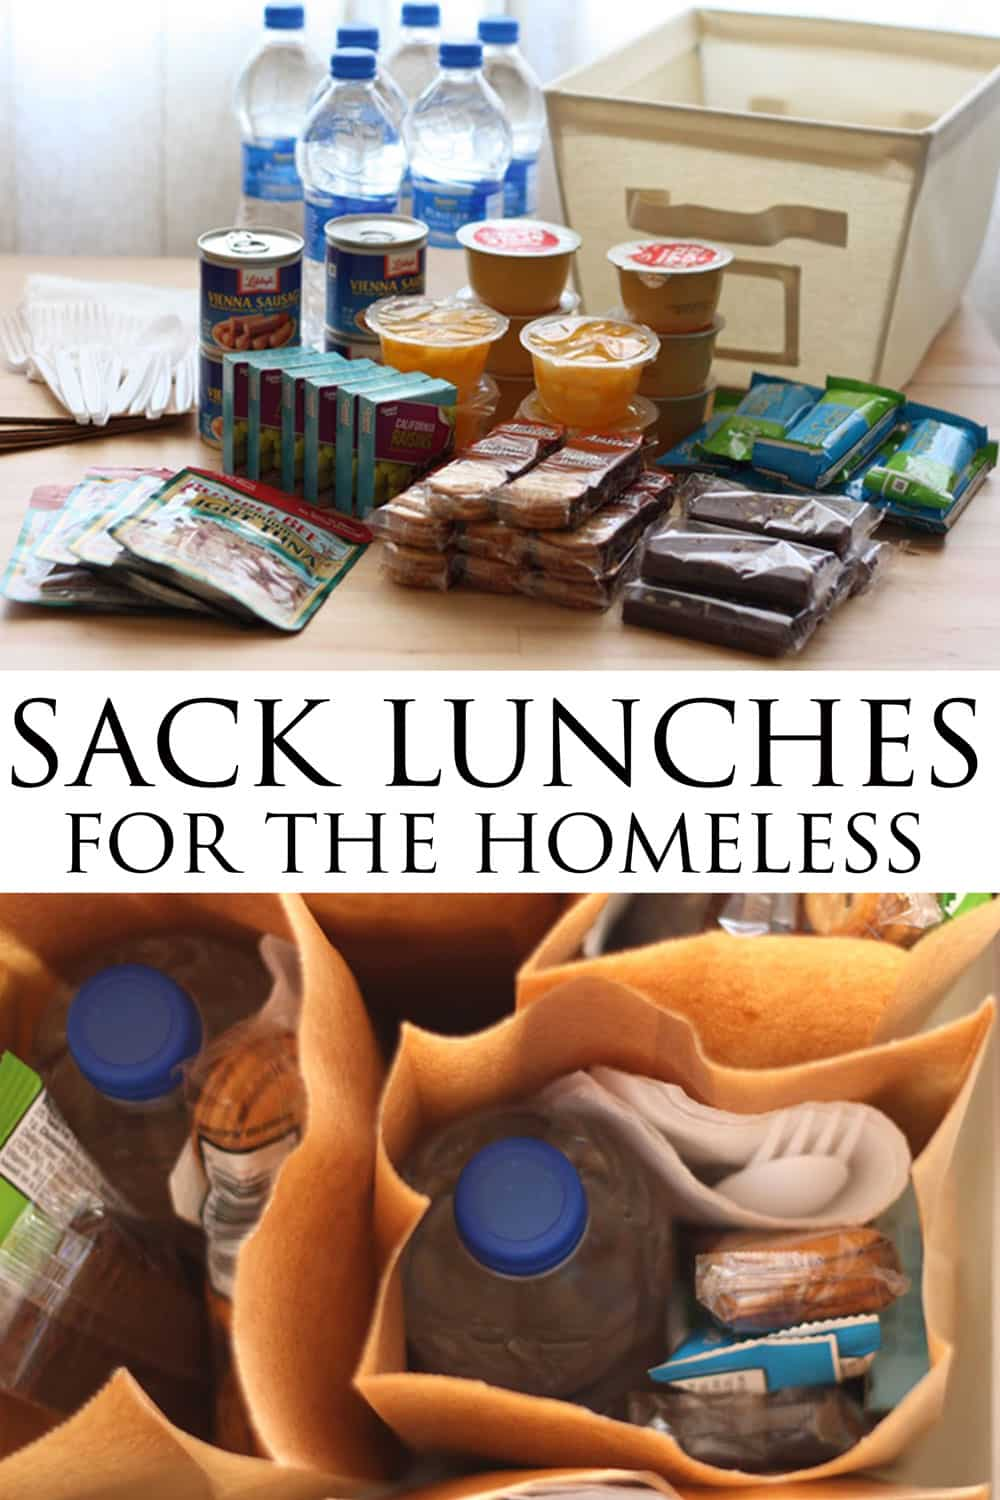 3 ways to help feed the hungry